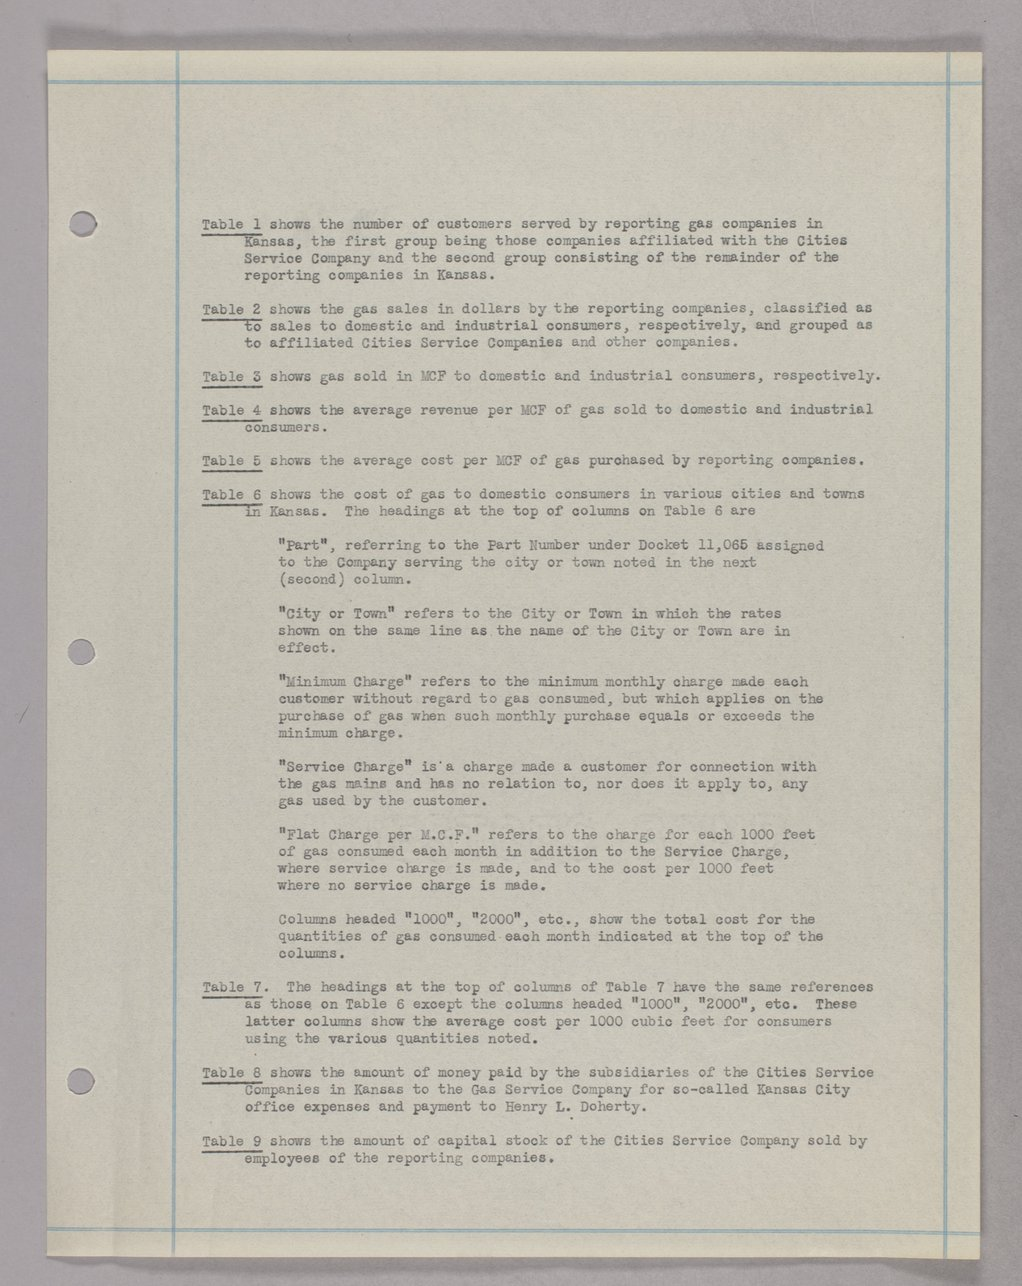 Governor Clyde M. Reed and Henry L. Doherty correspondence - 2